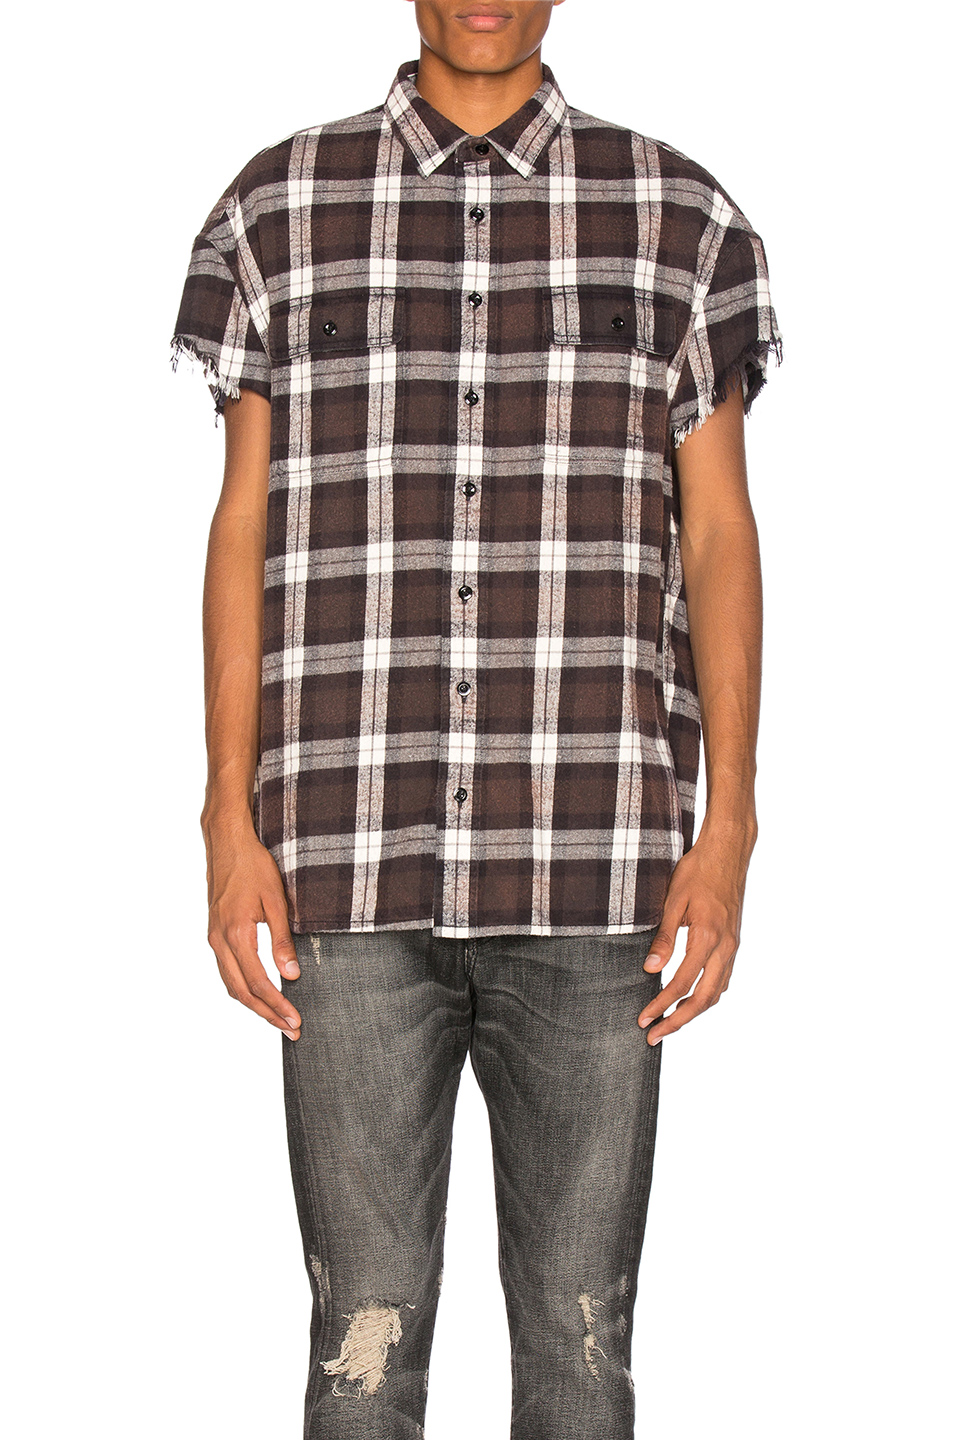 R13 Oversized Cut Off Shirt in Black,Checkered & Plaid